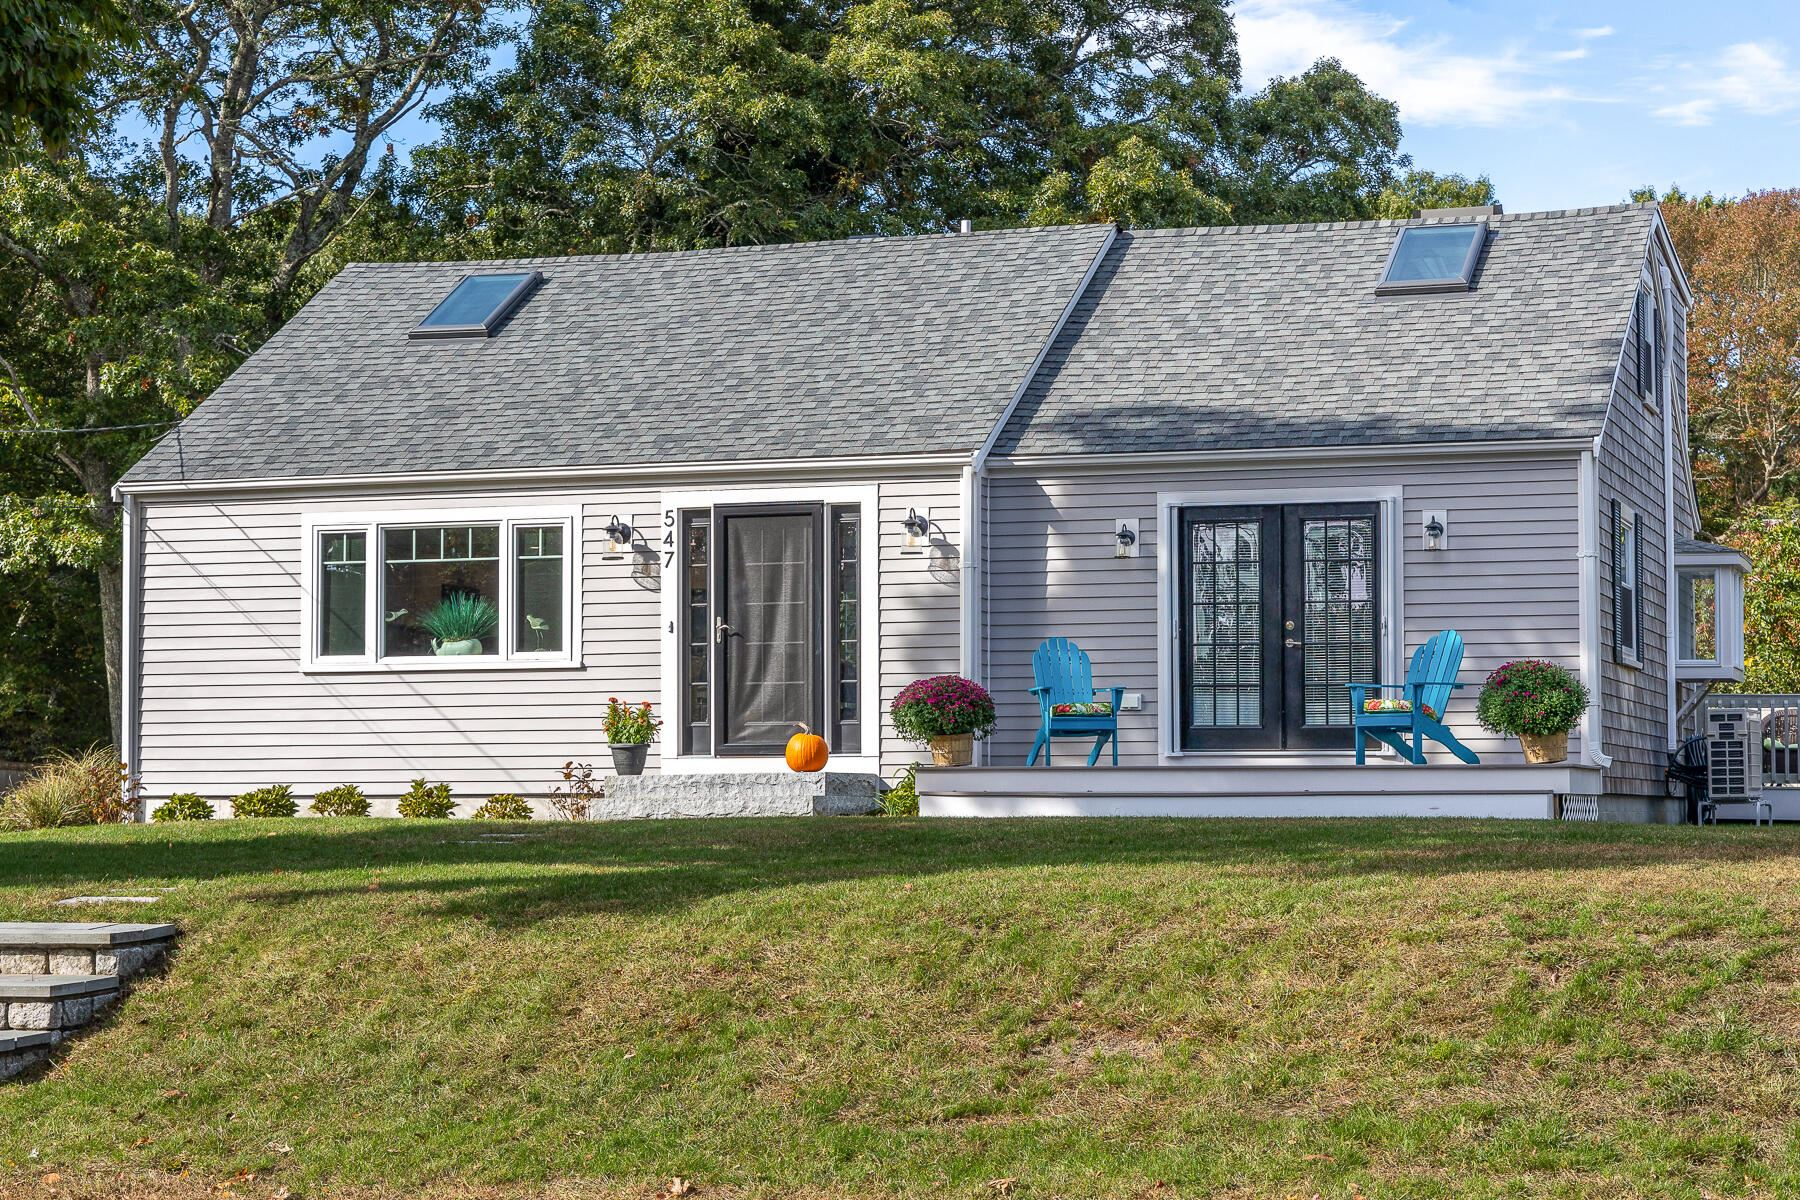 Photo of 547 Shootflying Hill Road, Centerville, MA 02632 (MLS # 22106285)